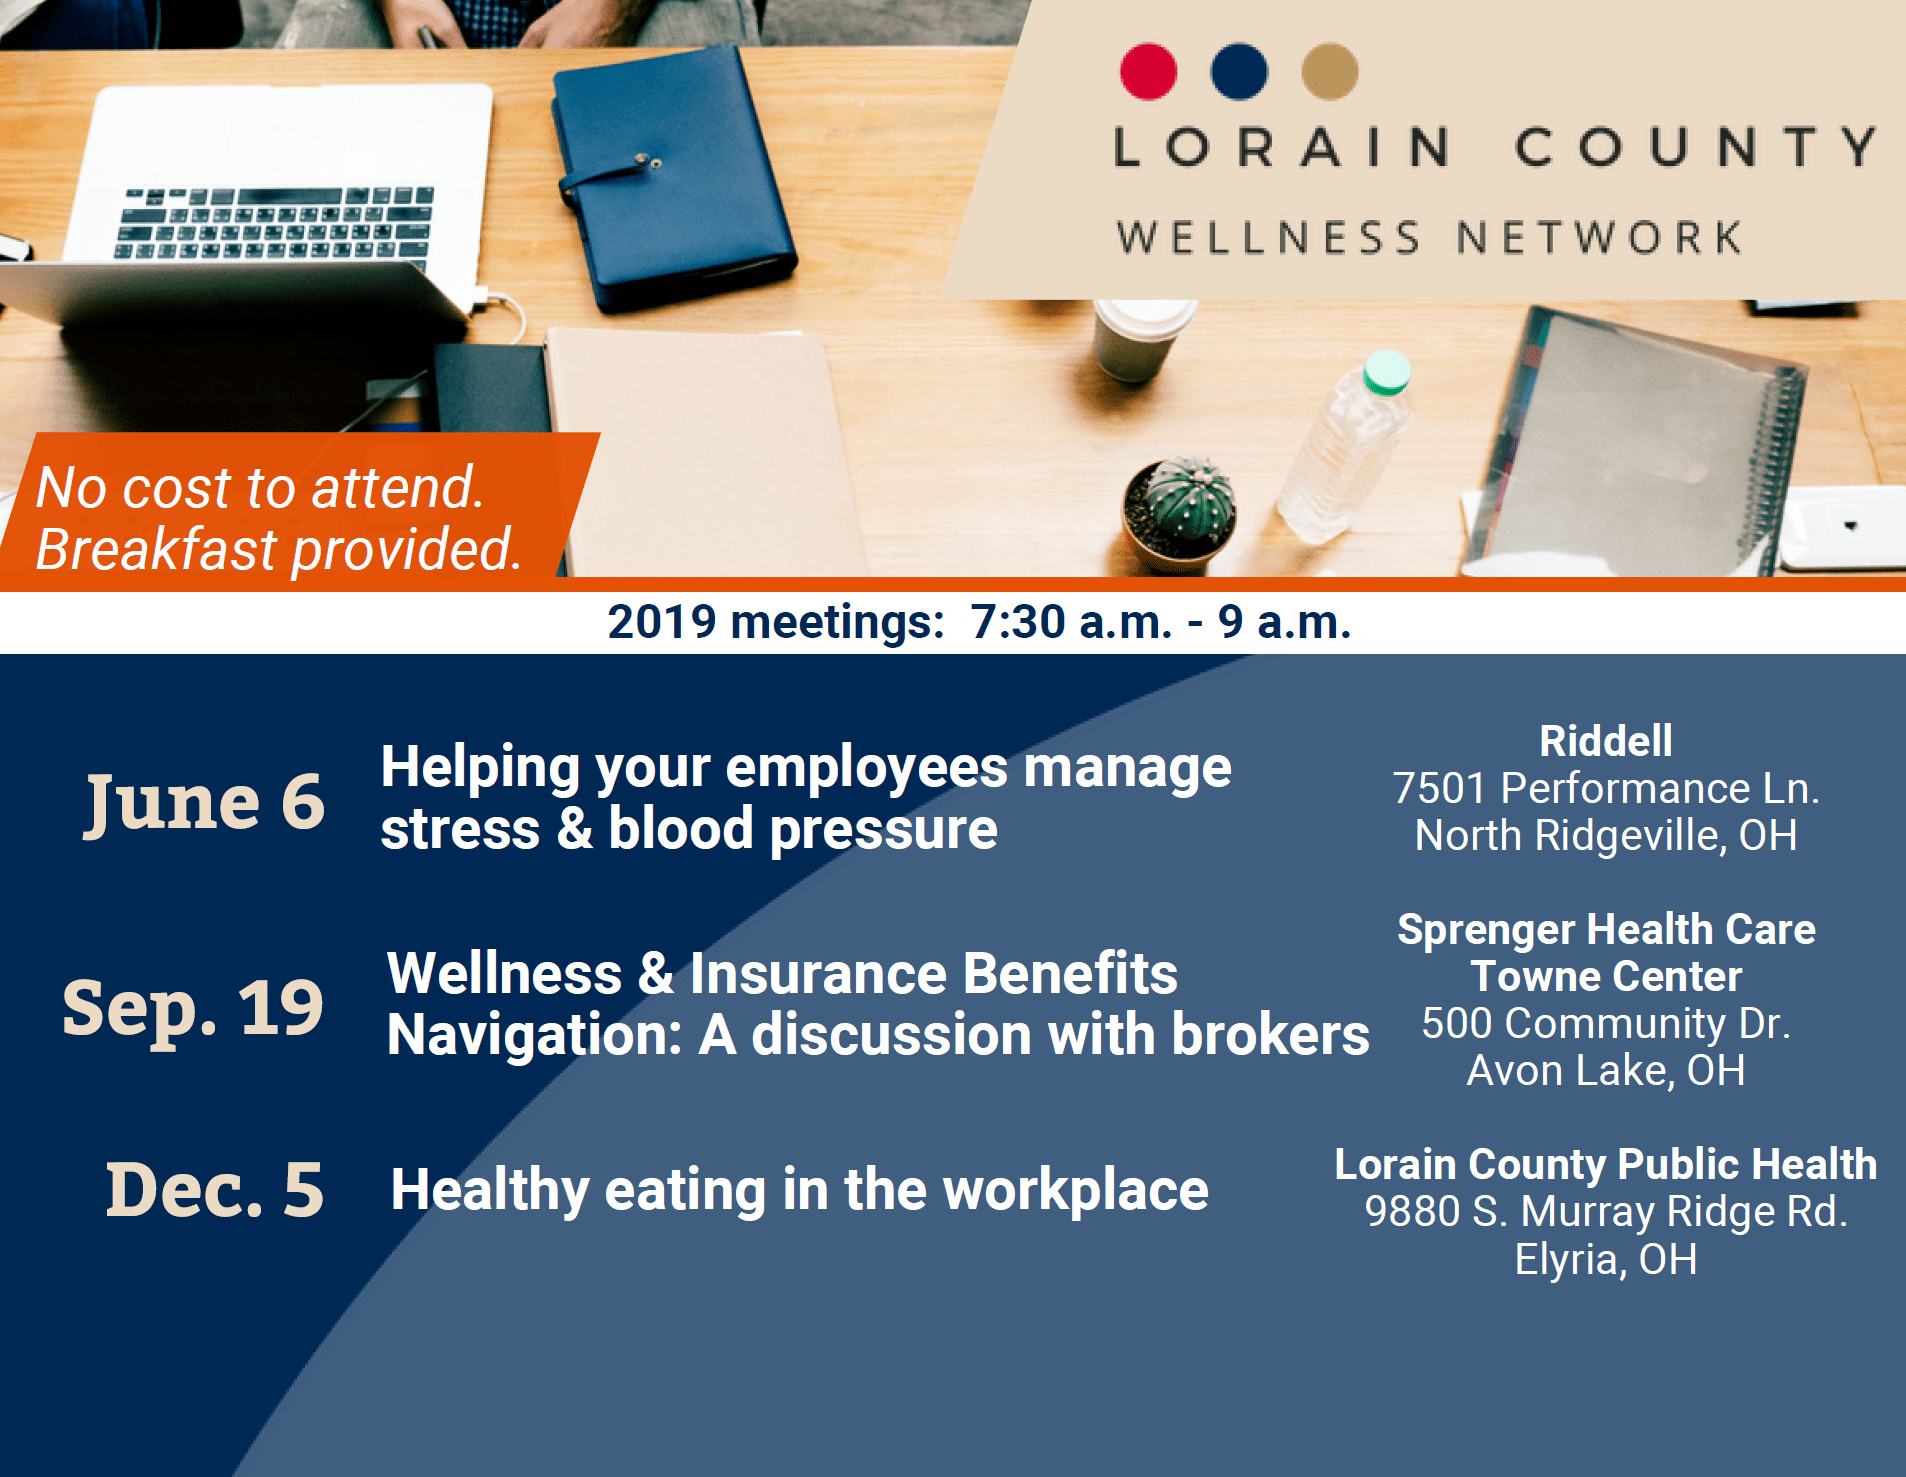 Lorain County Wellness Network postcard with dates and locations of upcoming meetings